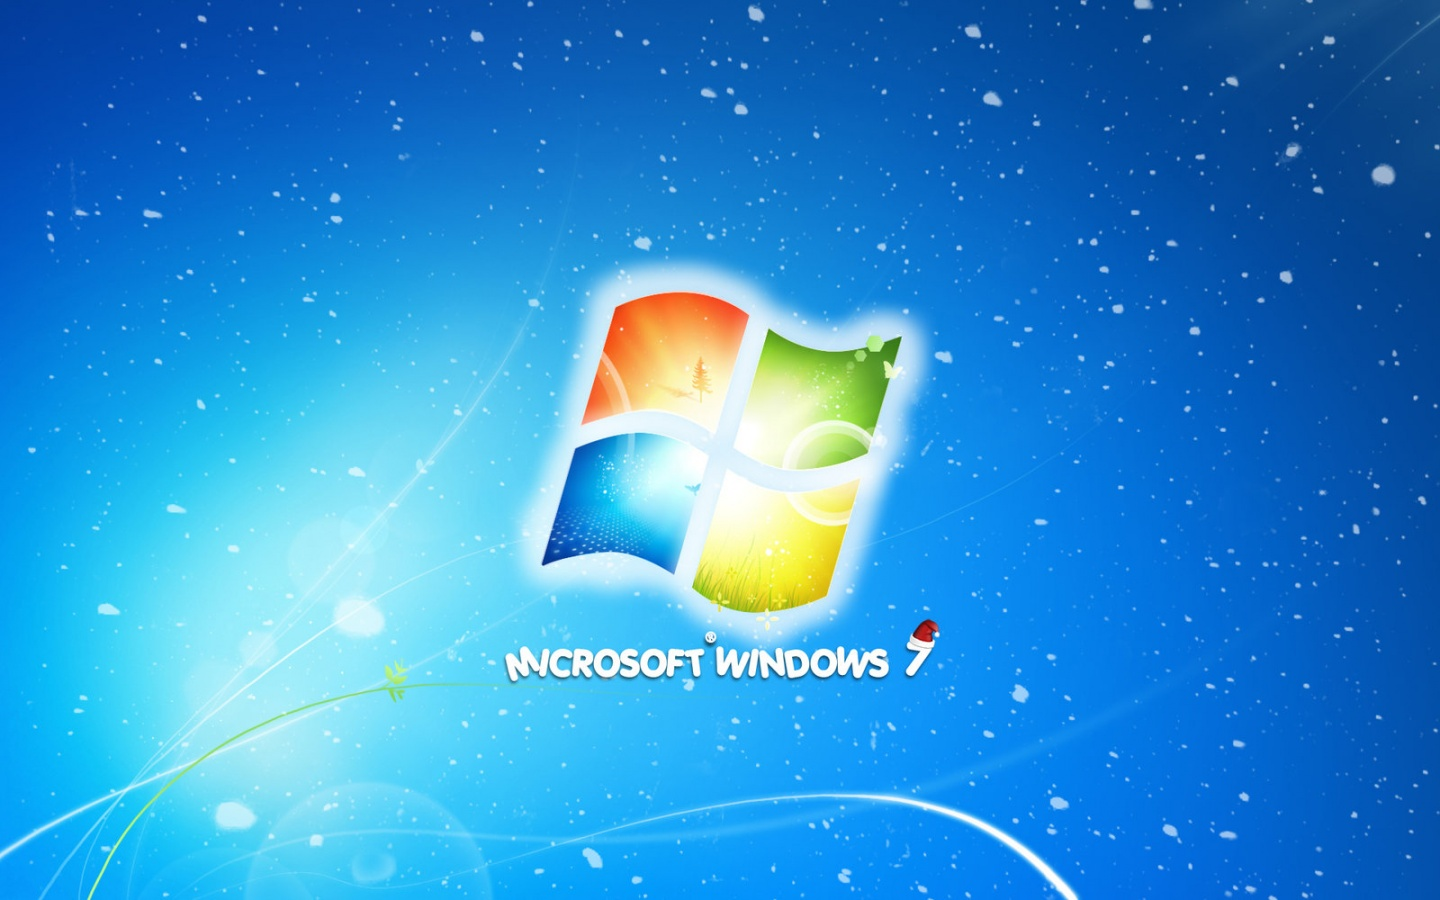 windows 7 wallpaper 1440x900 - photo #41